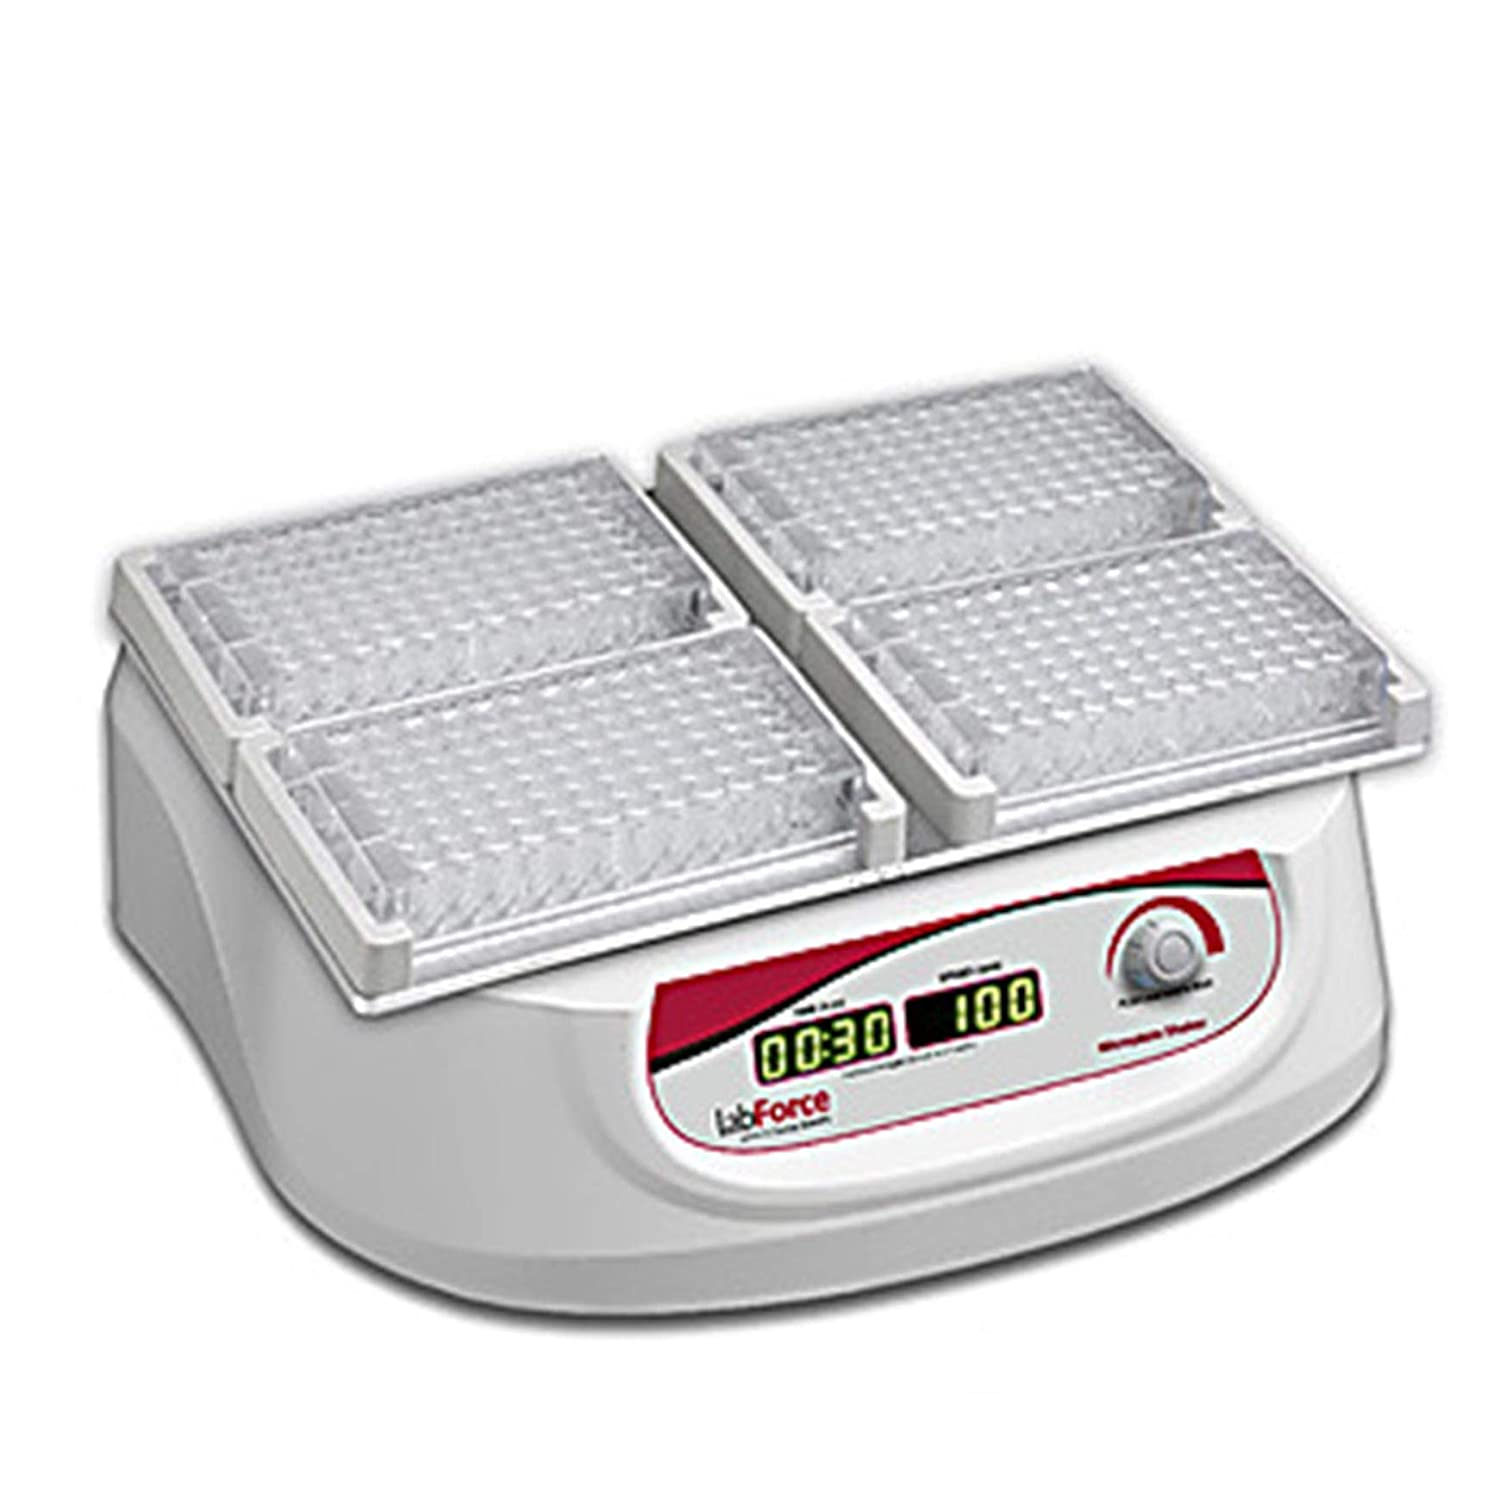 lab Force 1154J76 Microplate Shaker Popular popular with P Position 4 Ultra-Cheap Deals